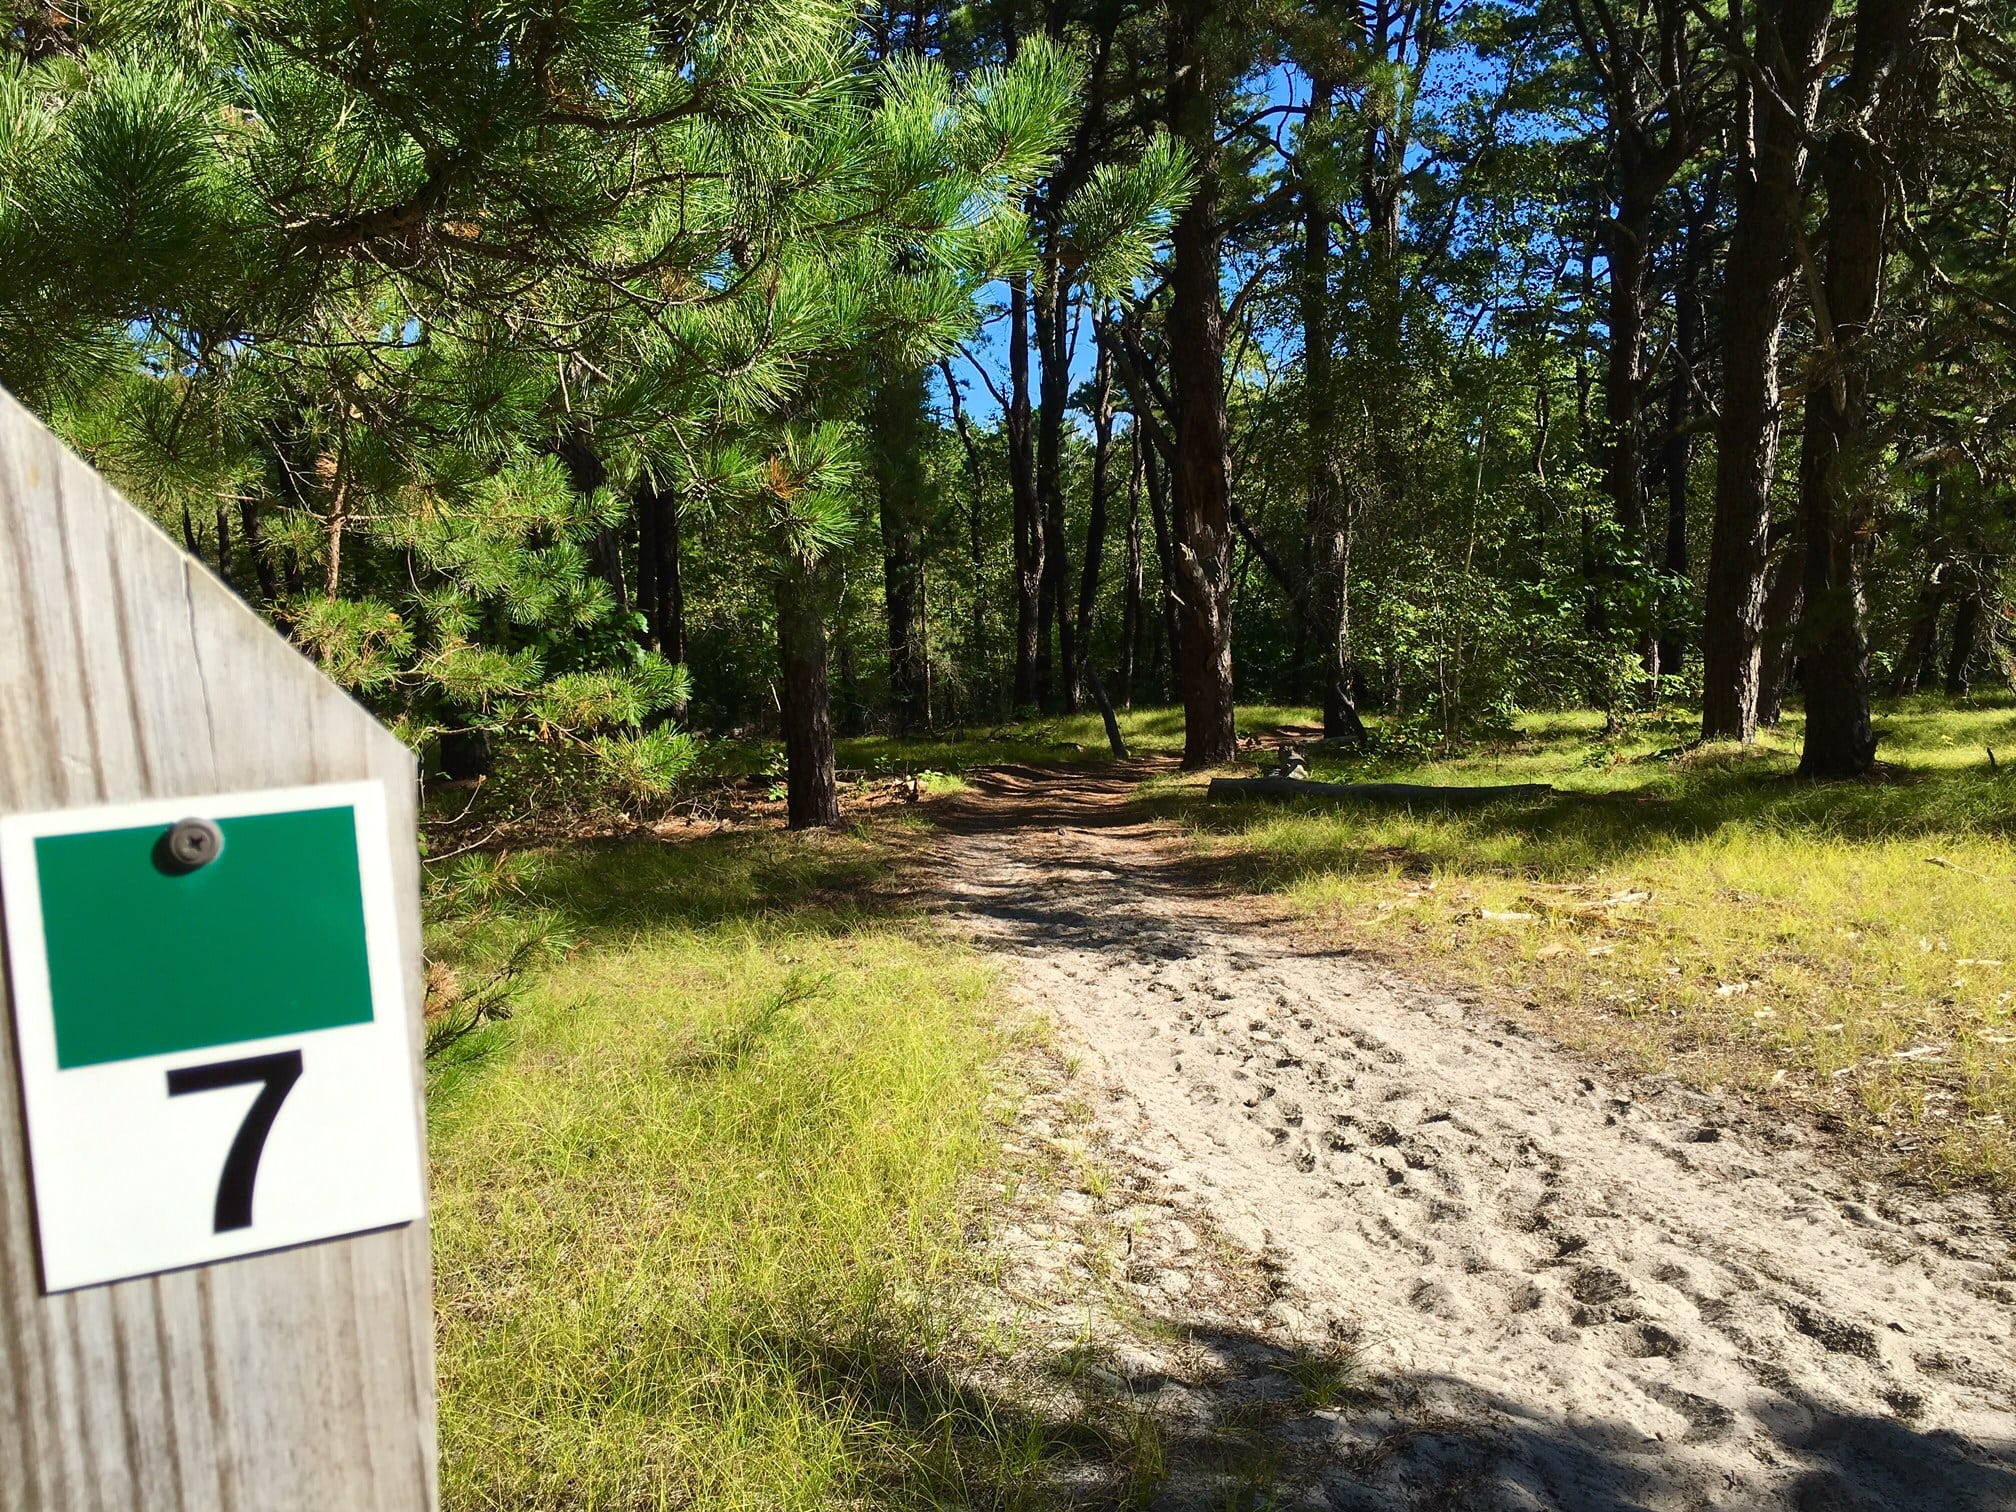 Keep following the numbered posts down. At Number 7 will lead you through a pine forest.